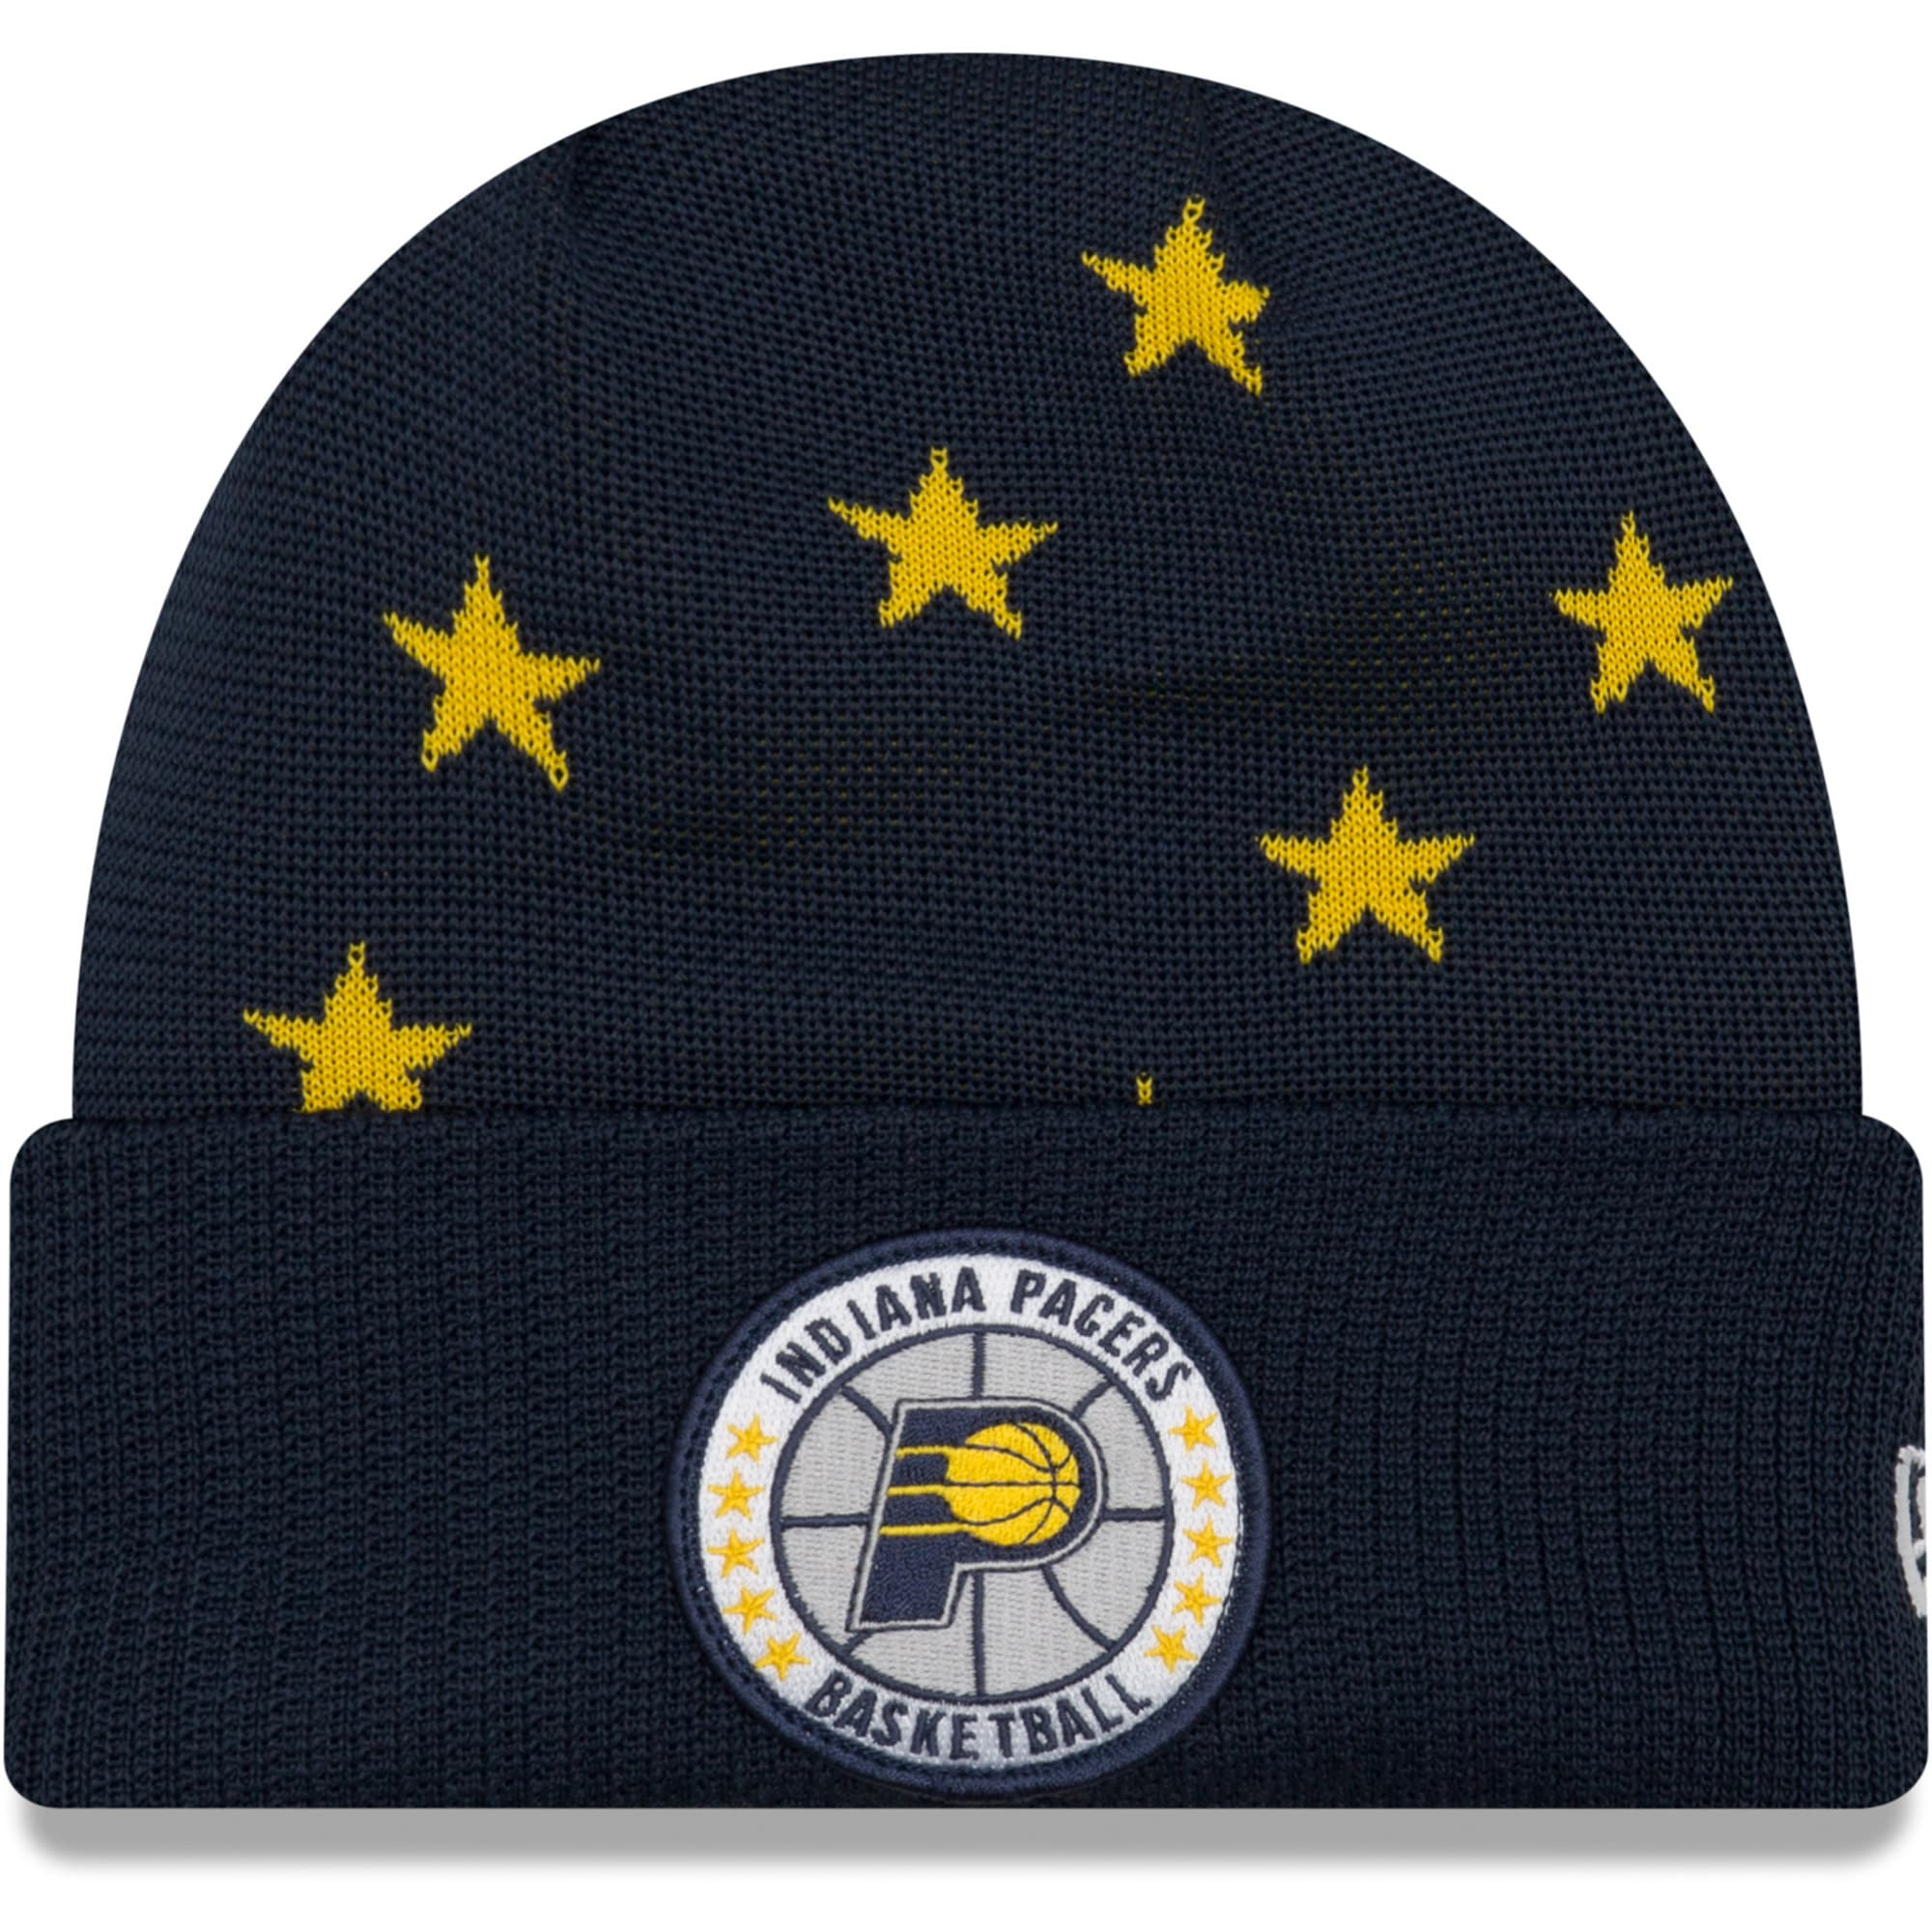 Indiana Pacers New Era 2018 Tip Off Series Cuffed Knit Hat - Navy